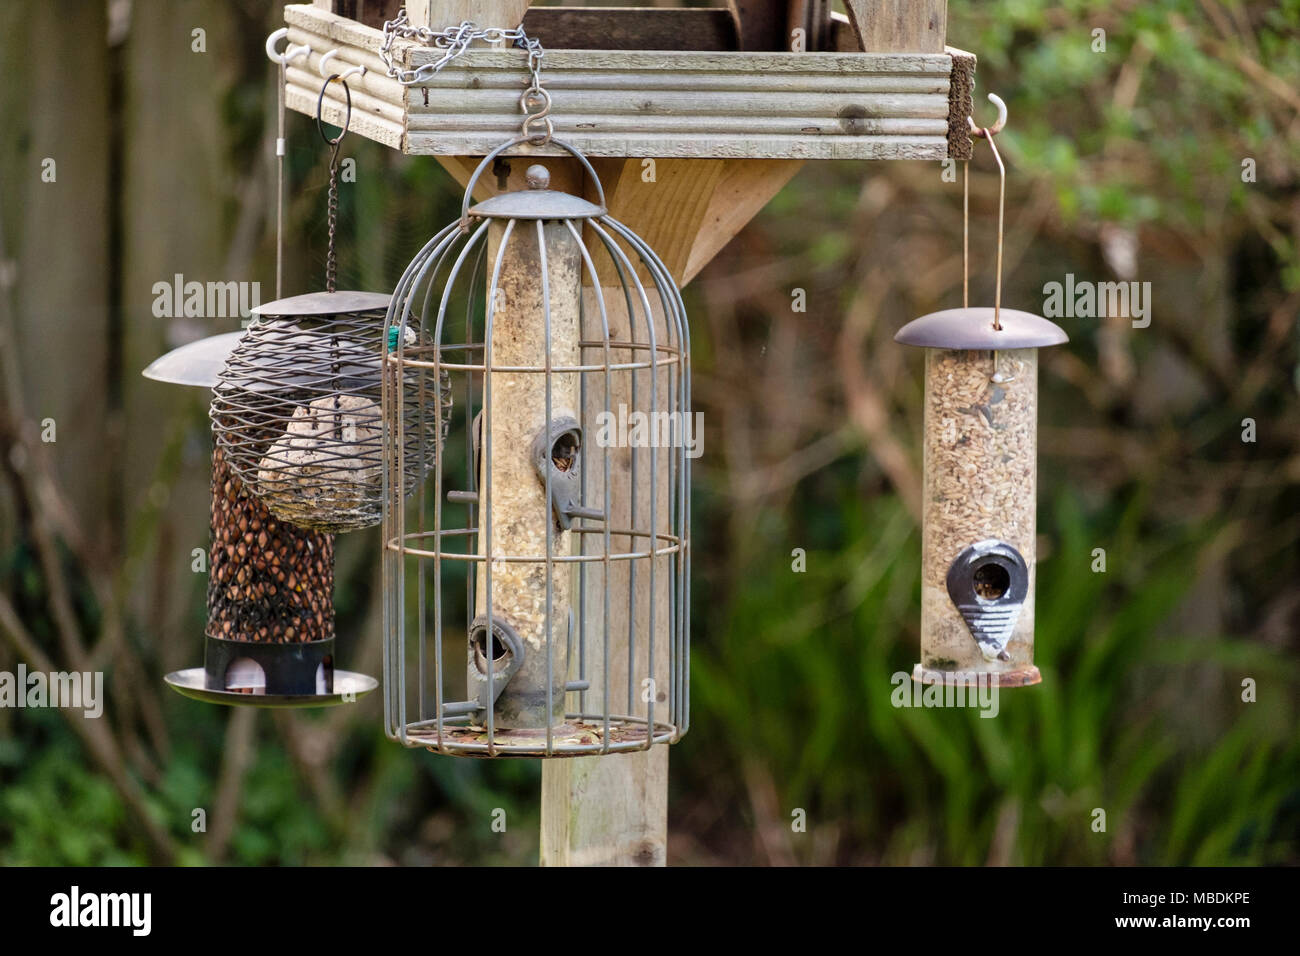 Seed, fat ball and peanut feeders hanging from a garden bird table. Wales, UK, Britain - Stock Image